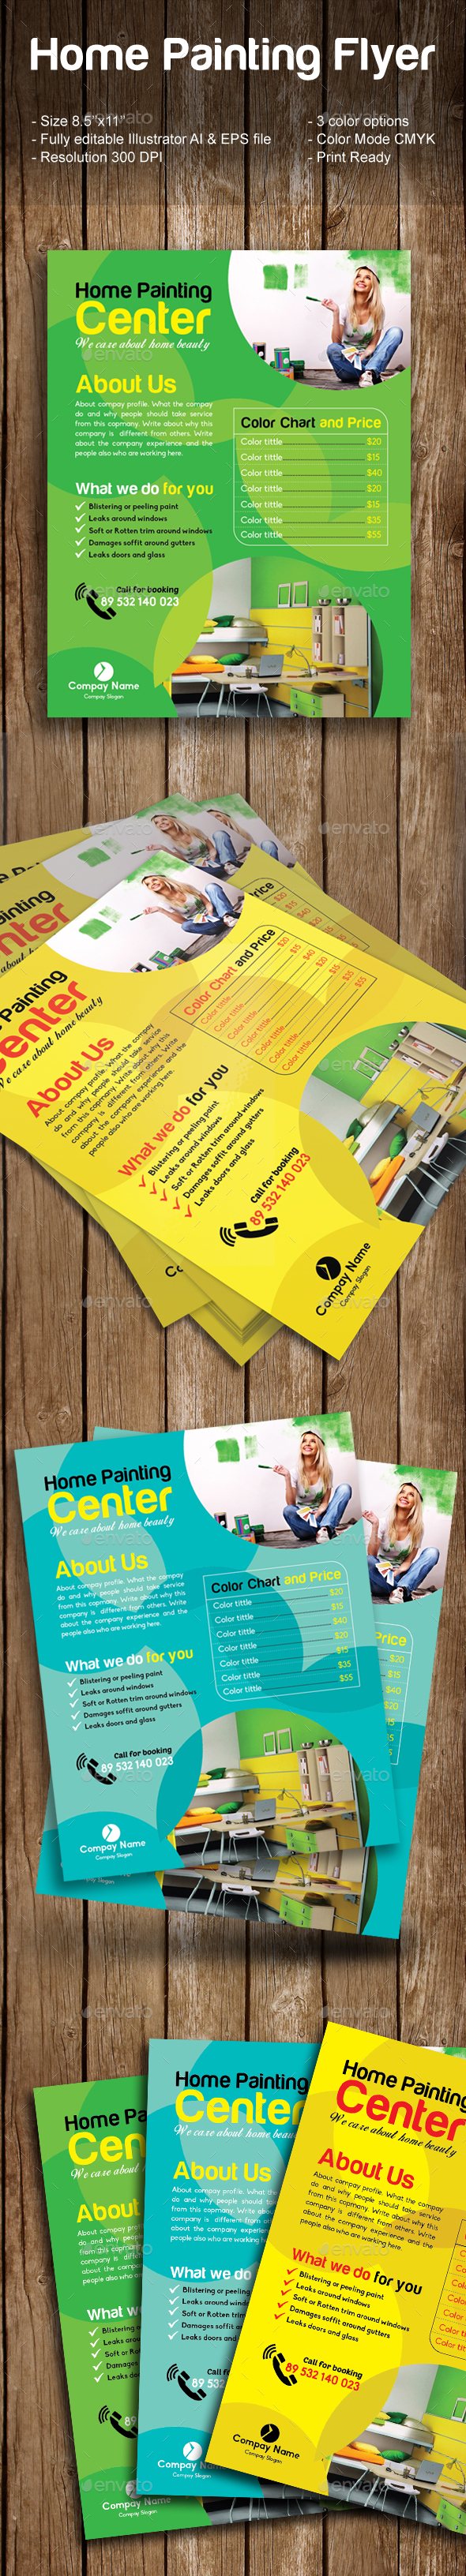 Home Painting Flyer - Commerce Flyers